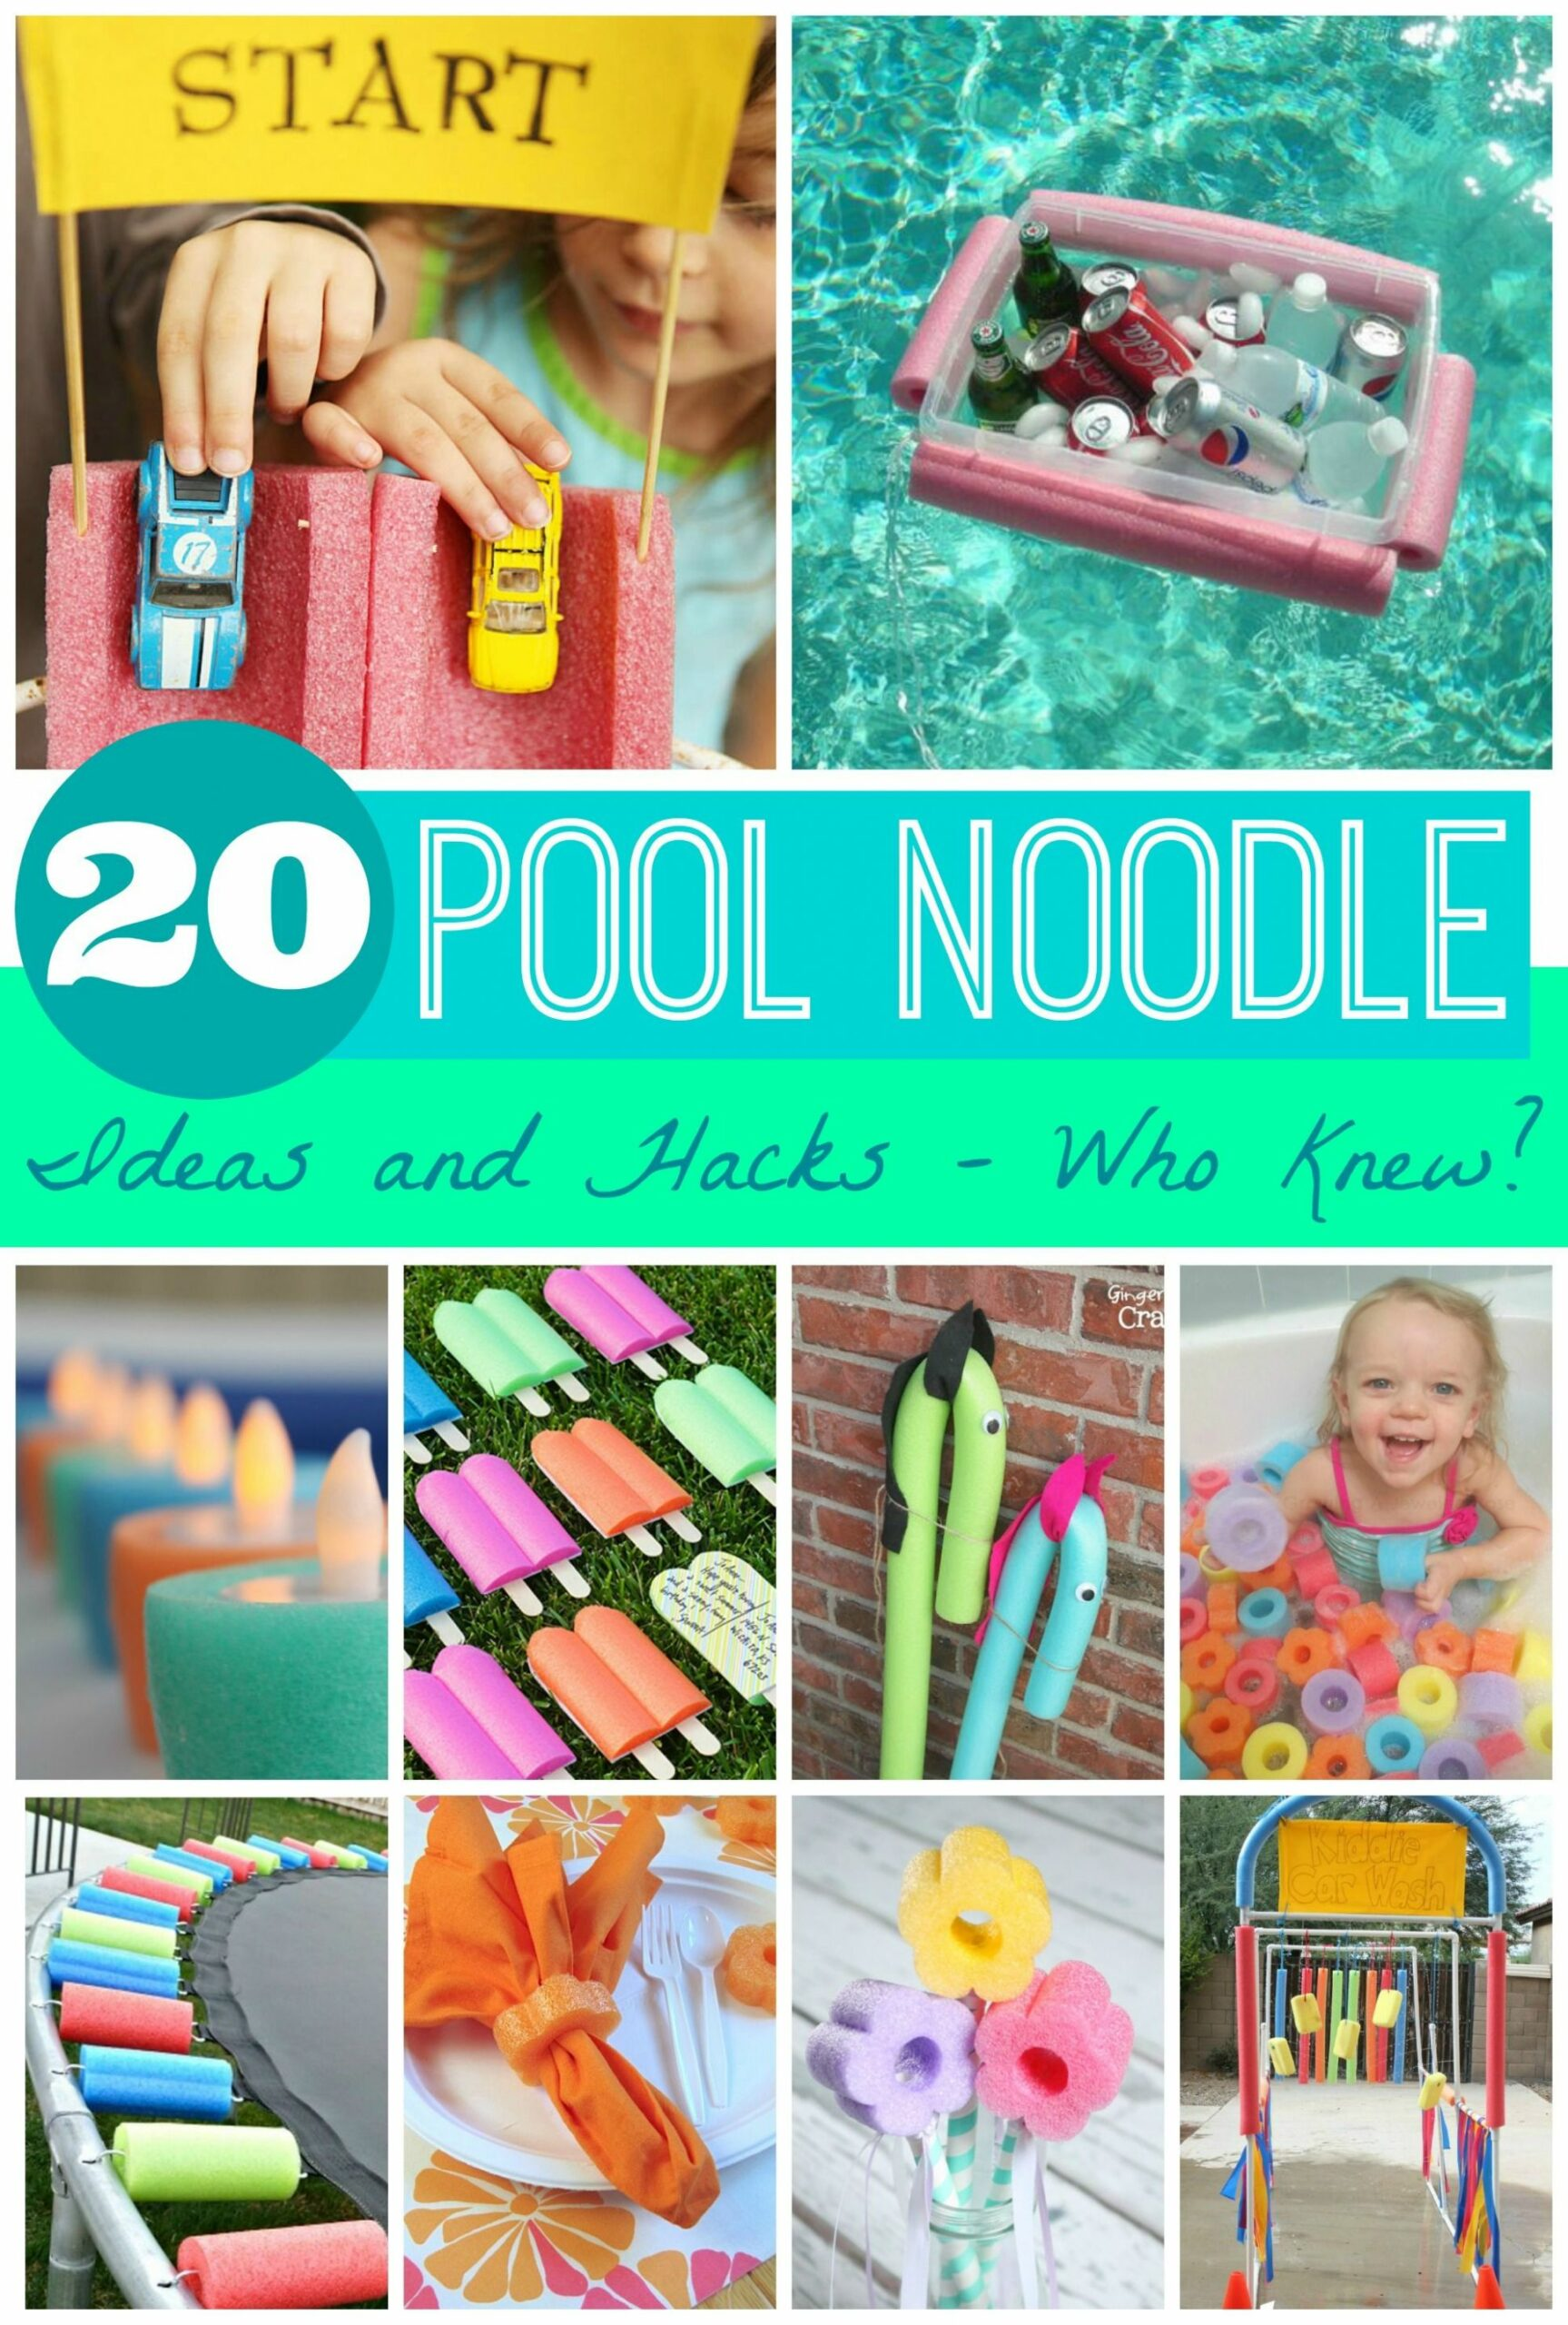 10 Pool Noodle Ideas and Hacks - Who Knew? | Pool noodles, Pool ...